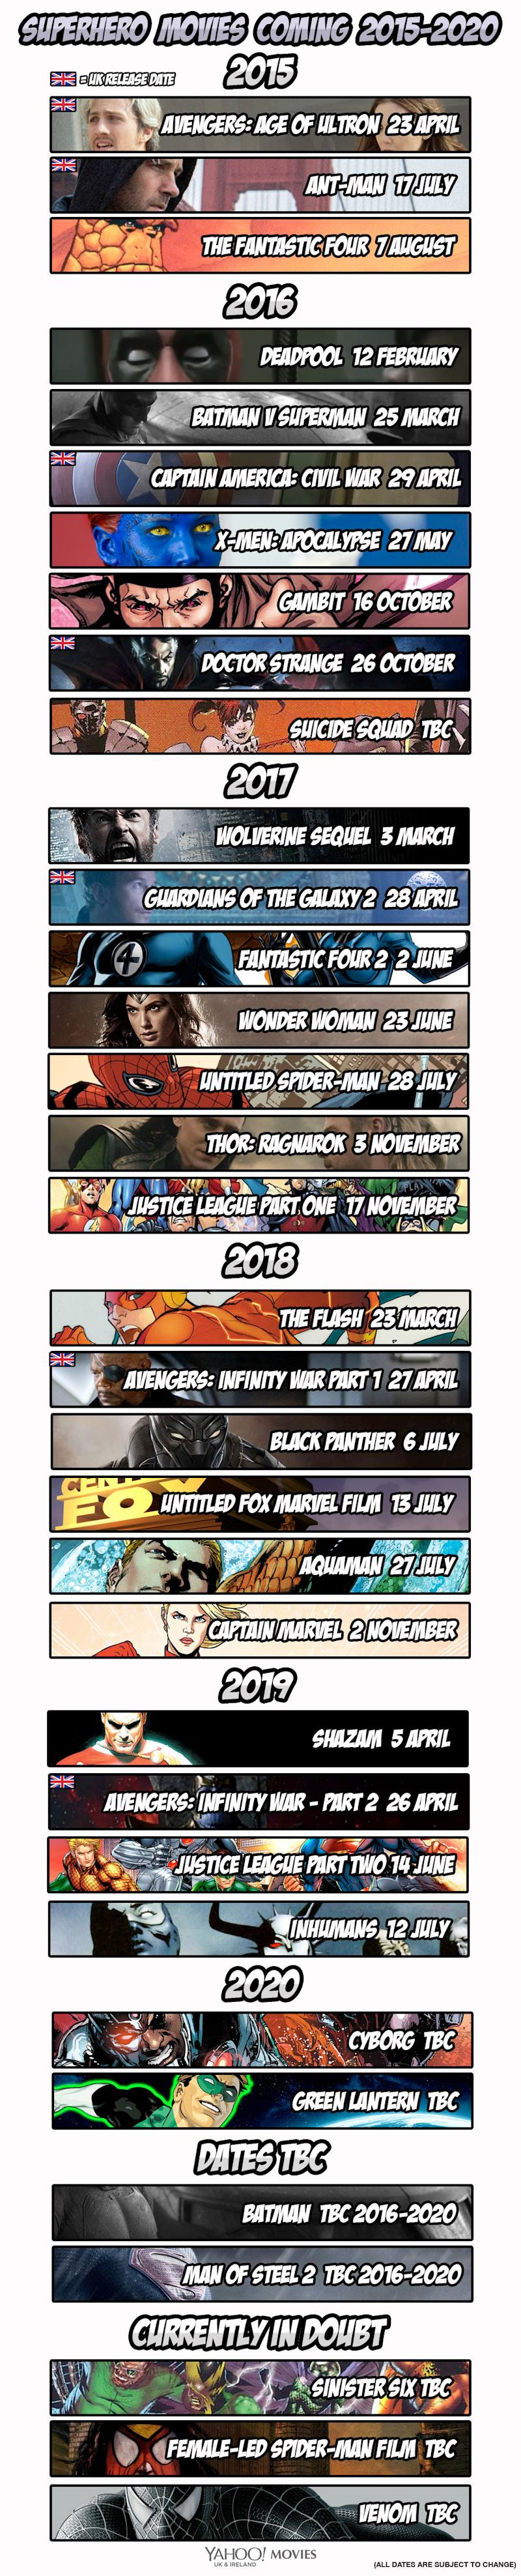 marvel film release dates uk